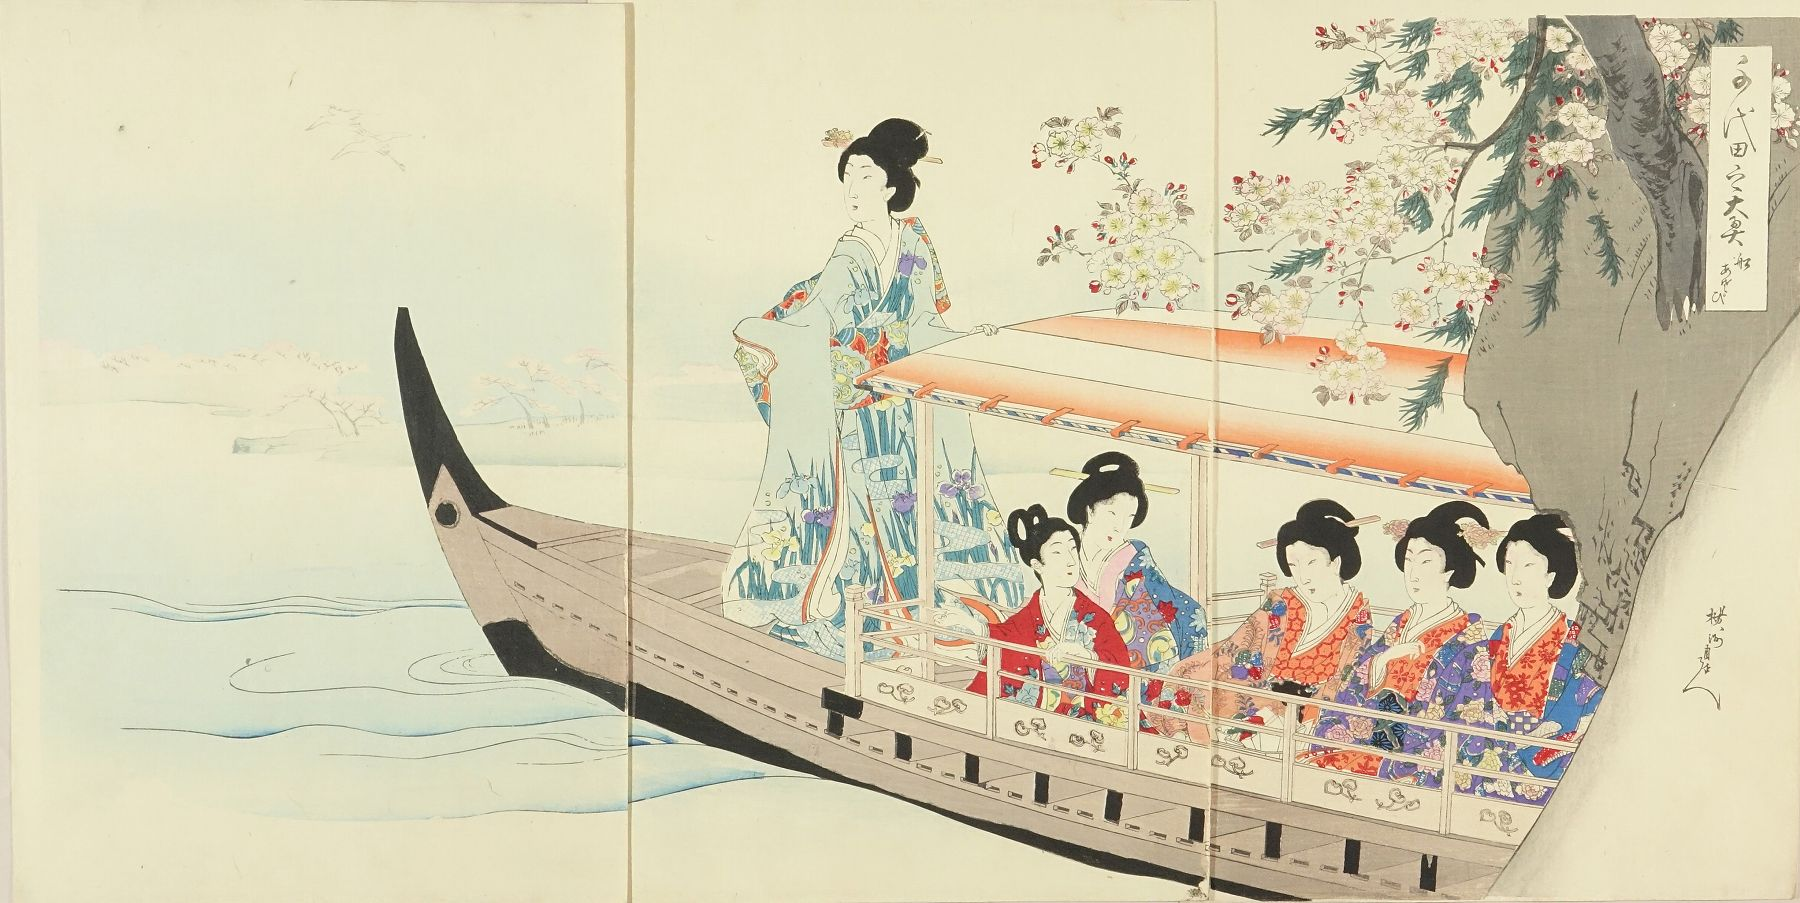 CHIKANOBU <i>Funa asobi</i> (Pleasure boat), from <i>Chiyoda no o-oku</i> (Inner palace of Edo Castle), triptych